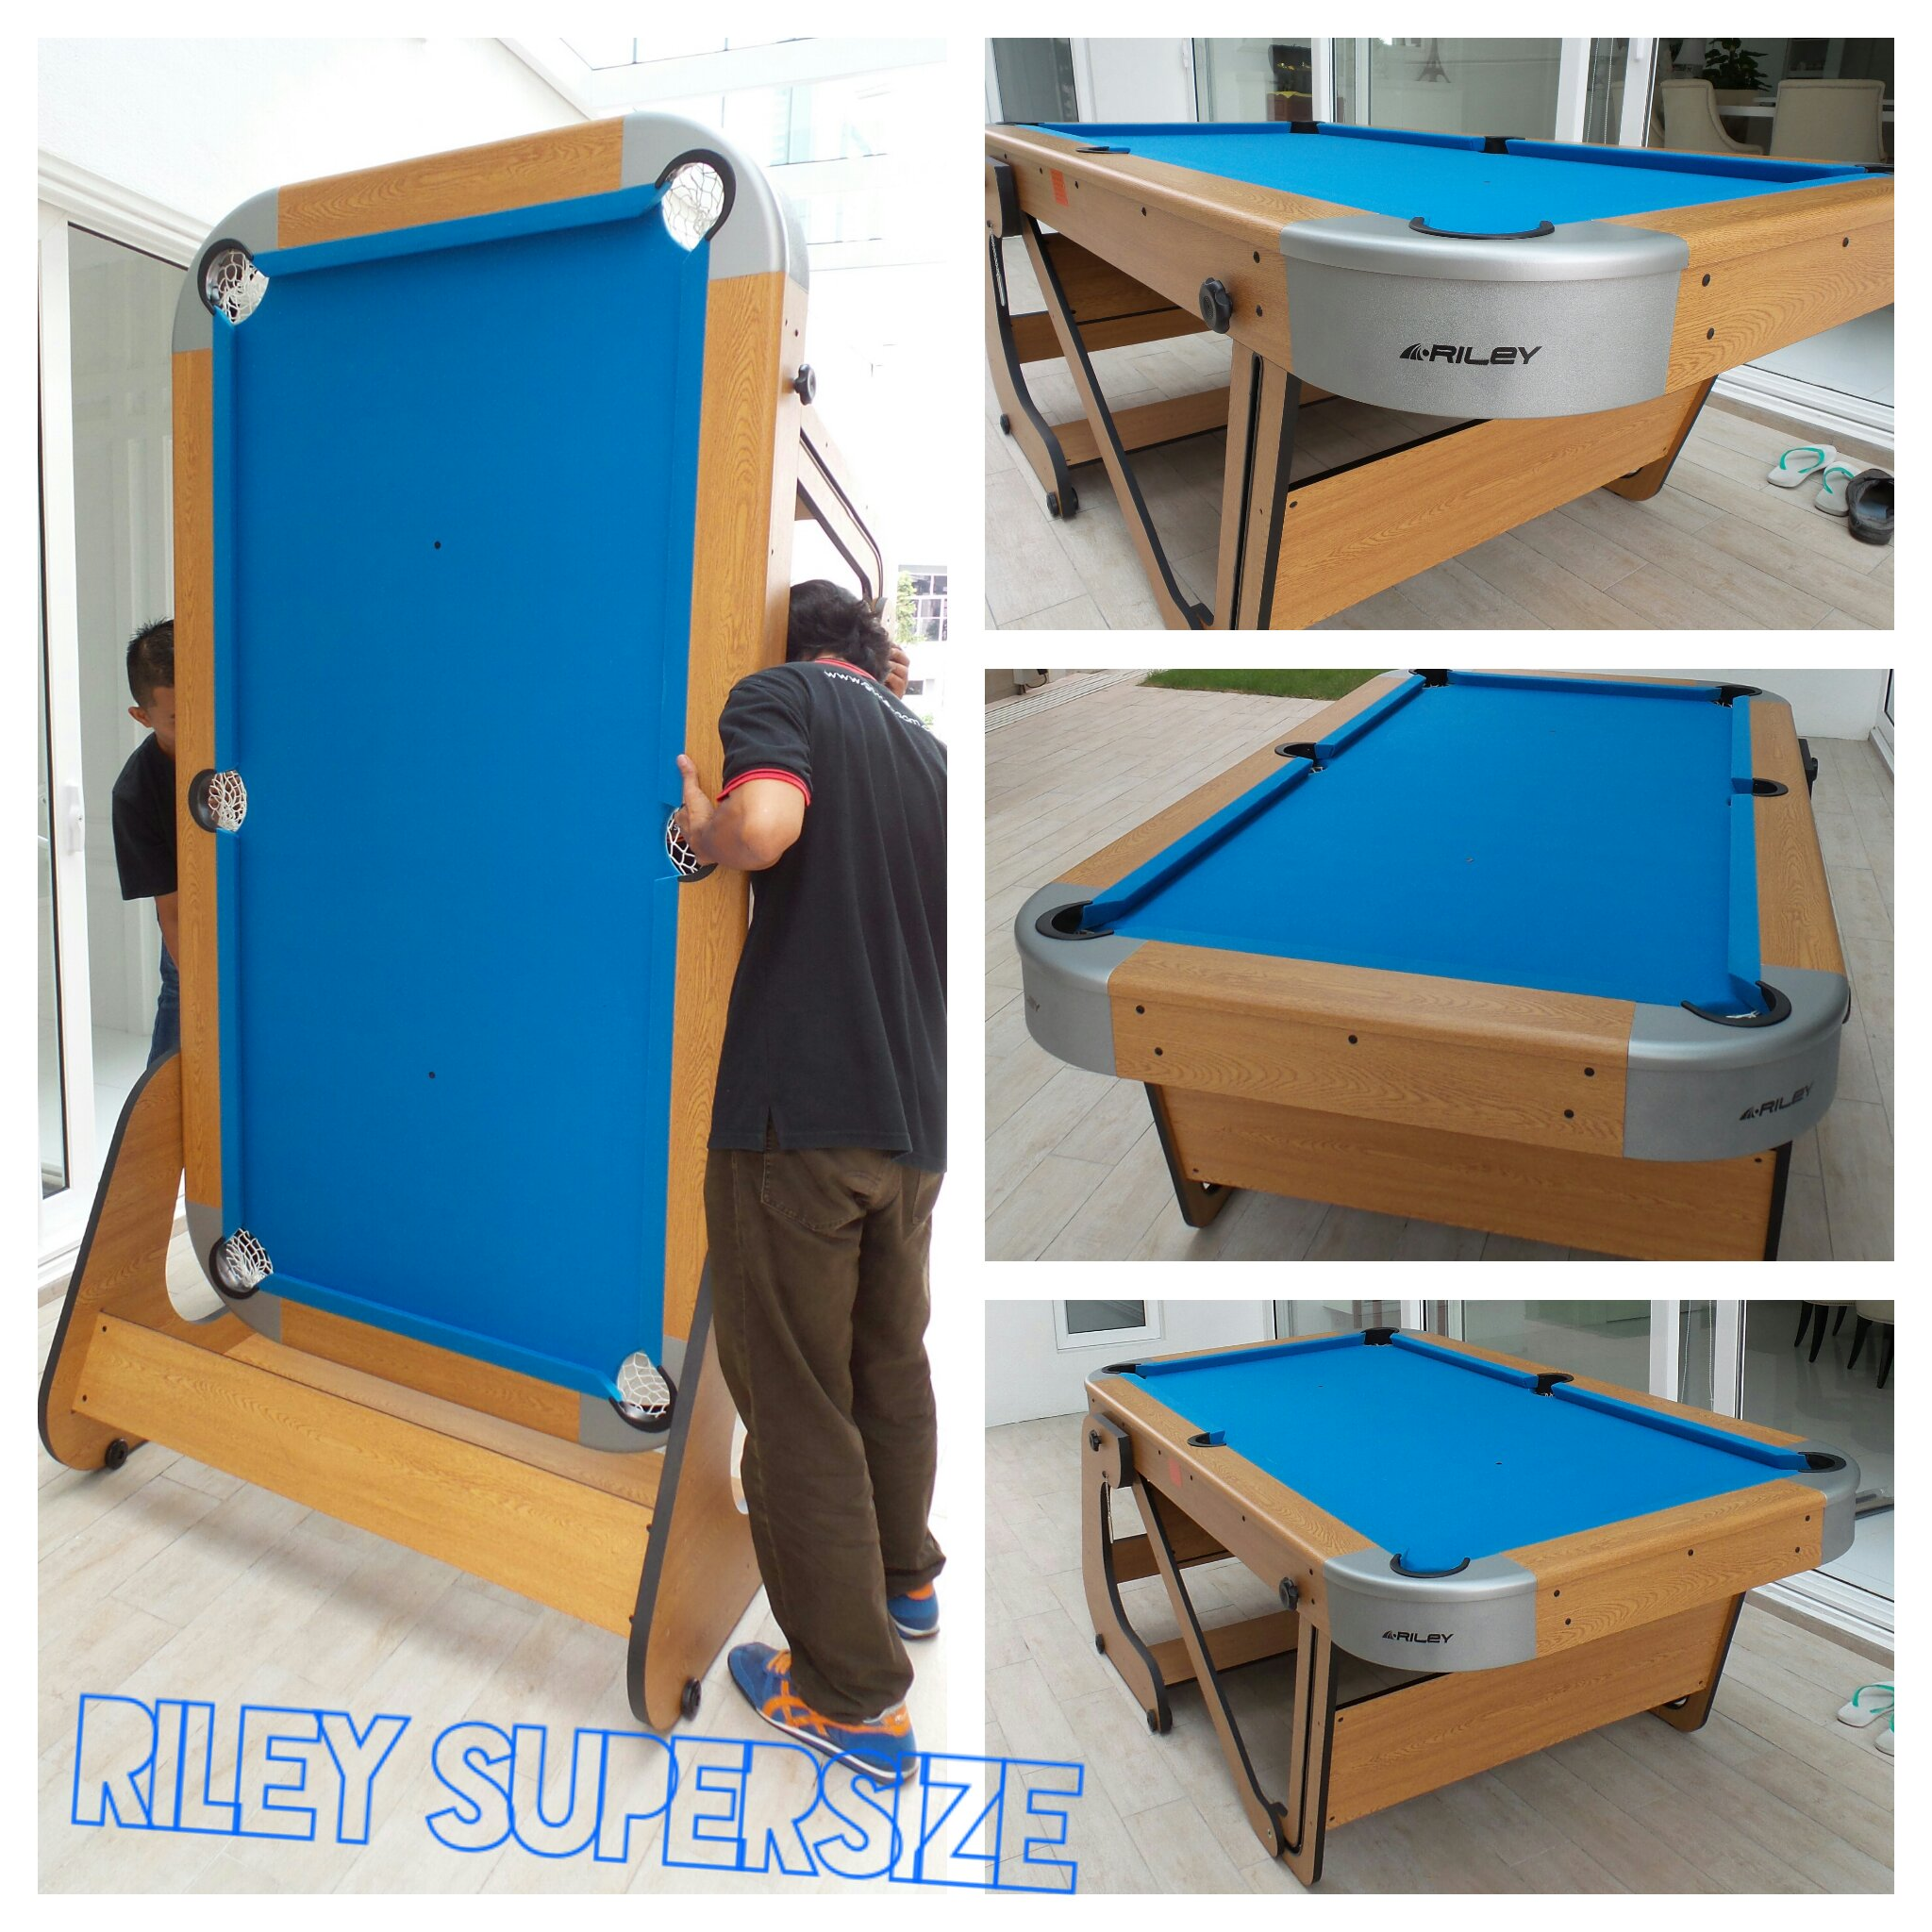 riley supersize foldable pool table malaysia table tennis shop billiards direct malaysia. Black Bedroom Furniture Sets. Home Design Ideas